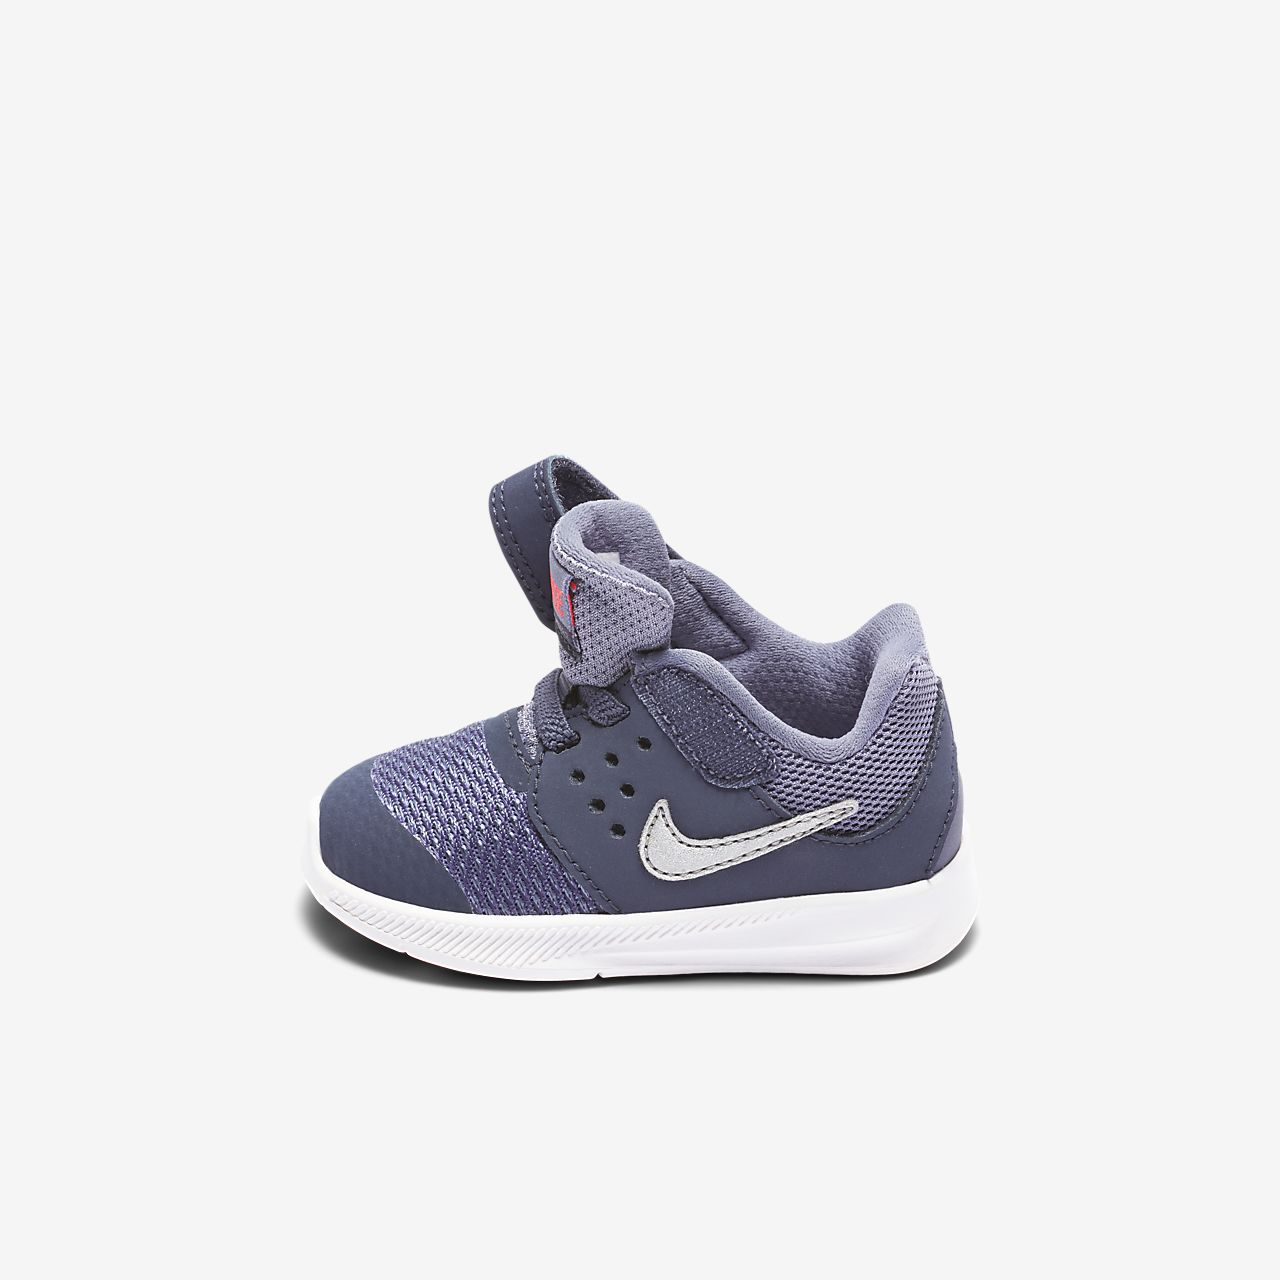 c46bced0d9d Nike Downshifter 7 Baby   Toddler Shoe. Nike.com GB